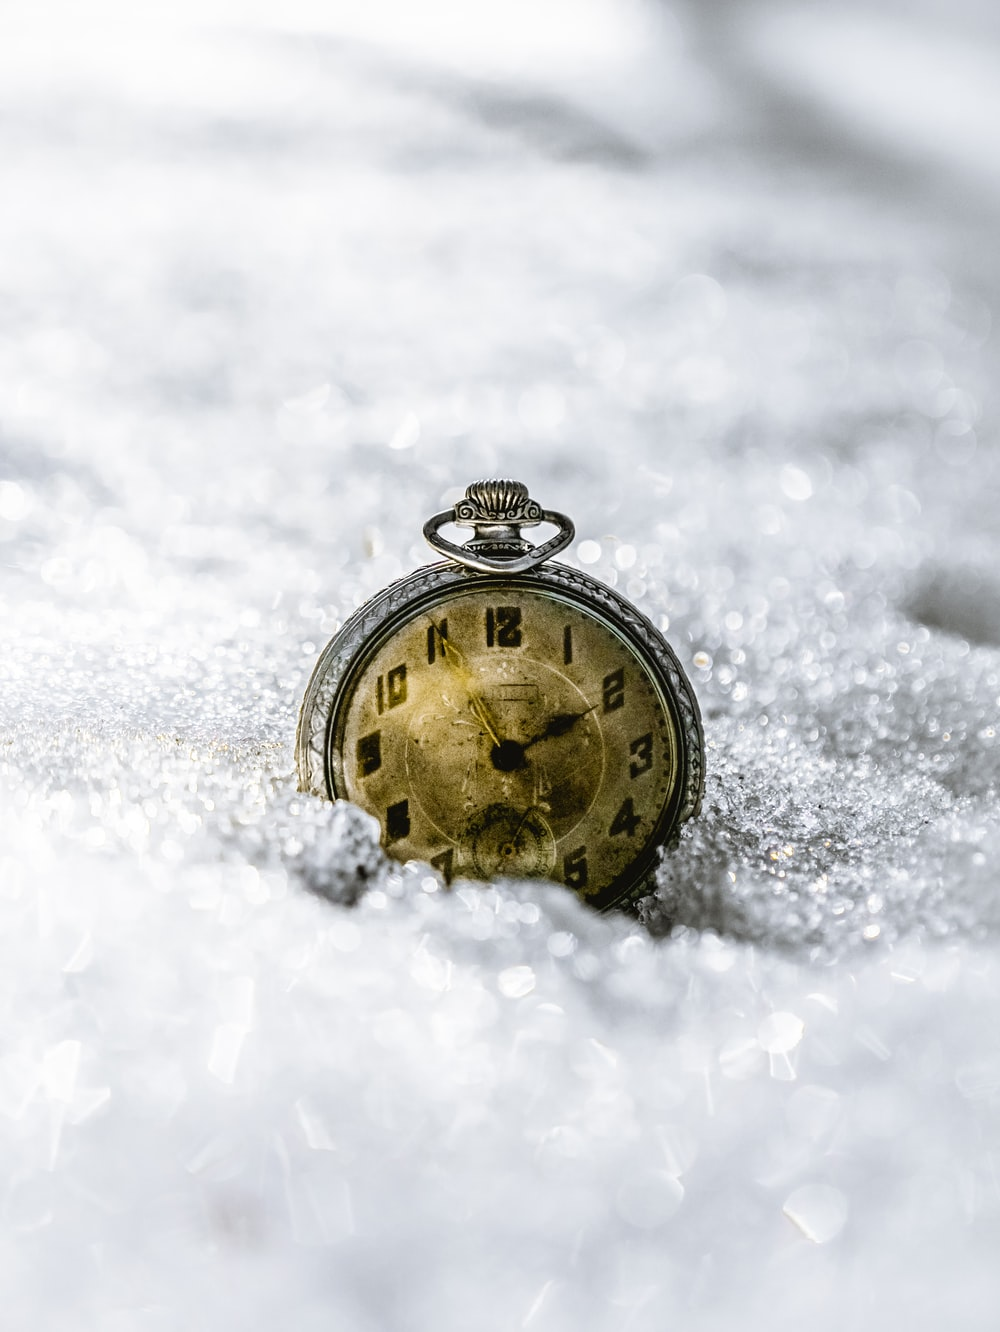 gold and black round pocket watch on snow